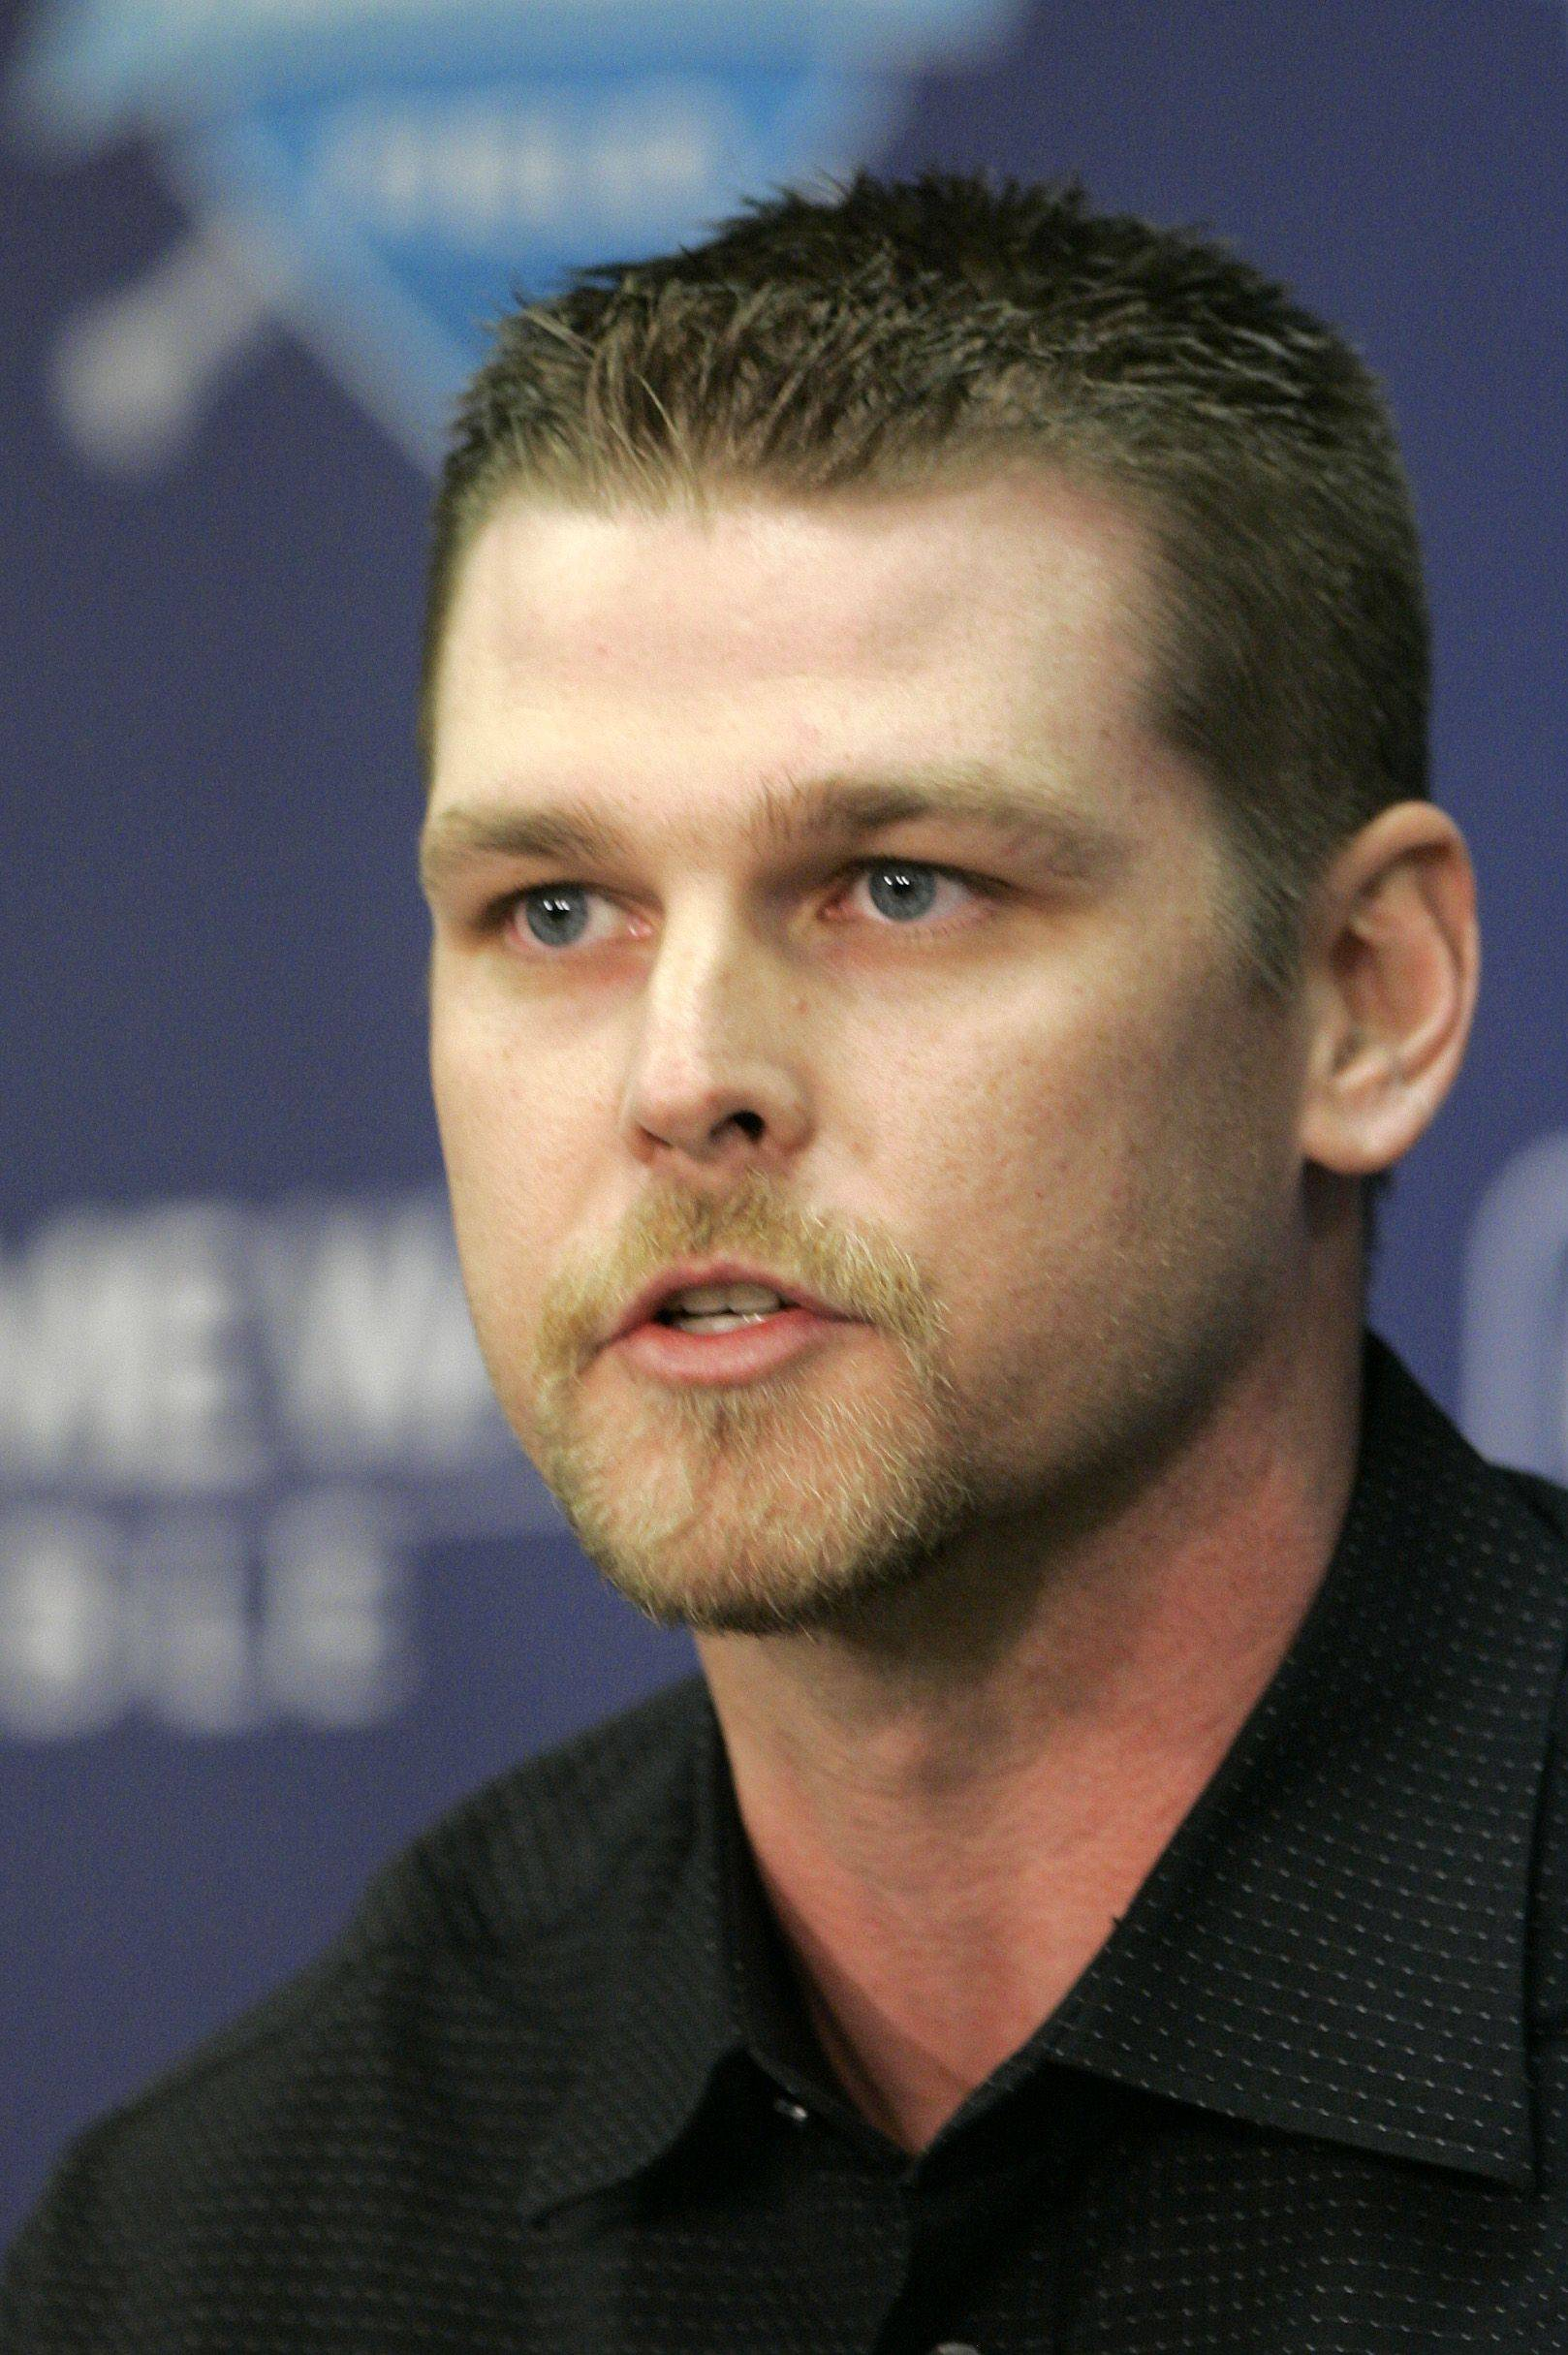 After playing for the Indians and the Yankees, Kerry Wood will return to the Cubs as a setup man for closer Carlos Marmol.